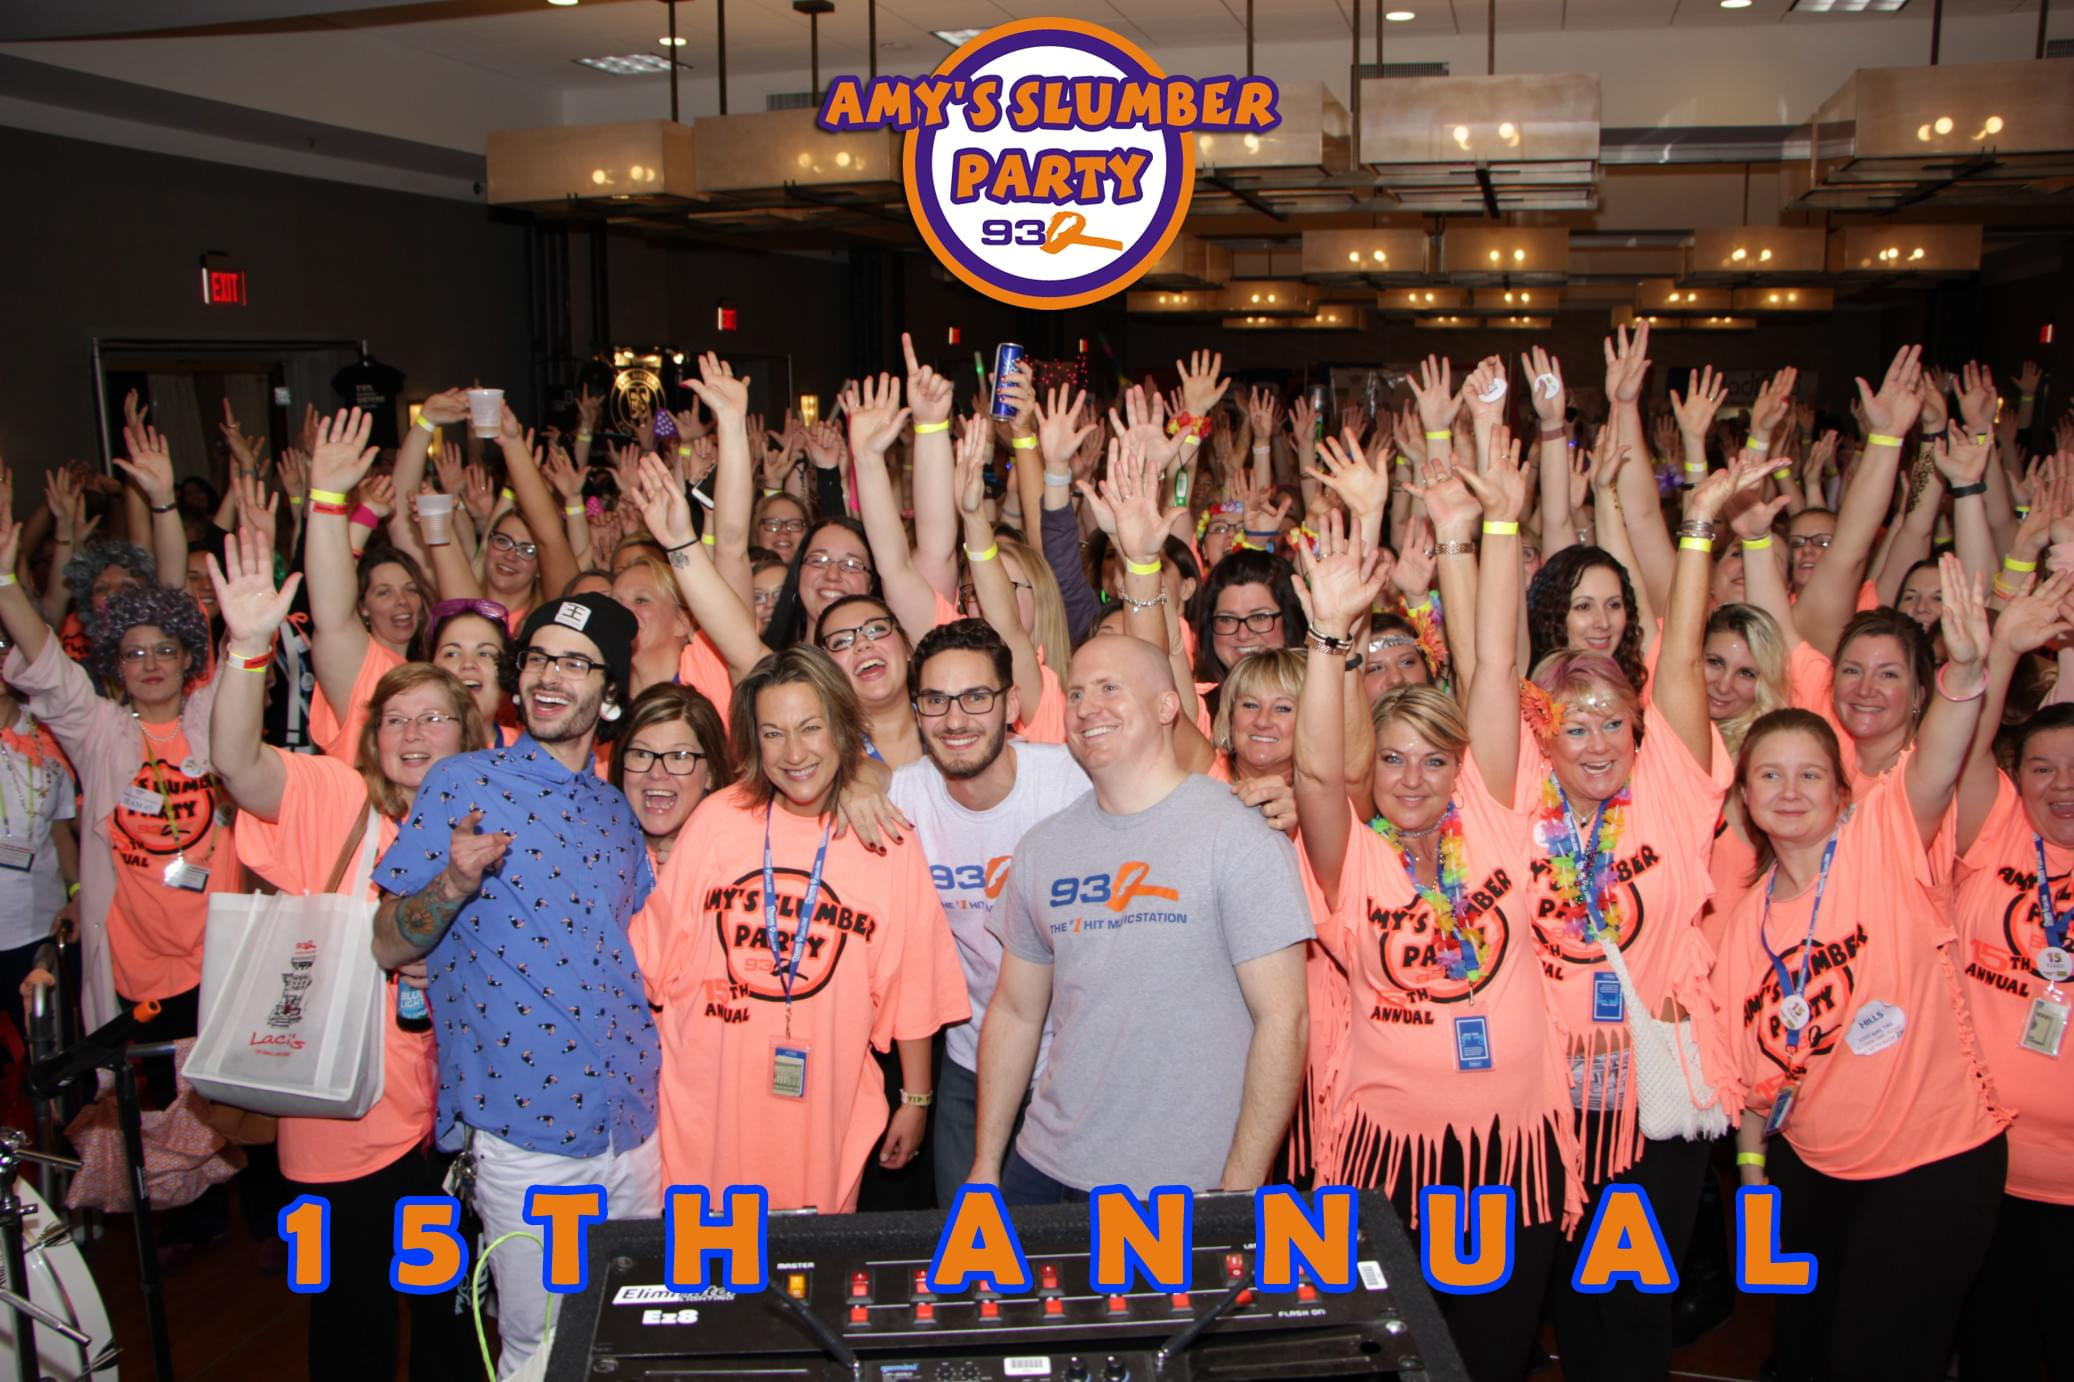 [Photo Gallery] 15th Annual Amy's Slumber Party